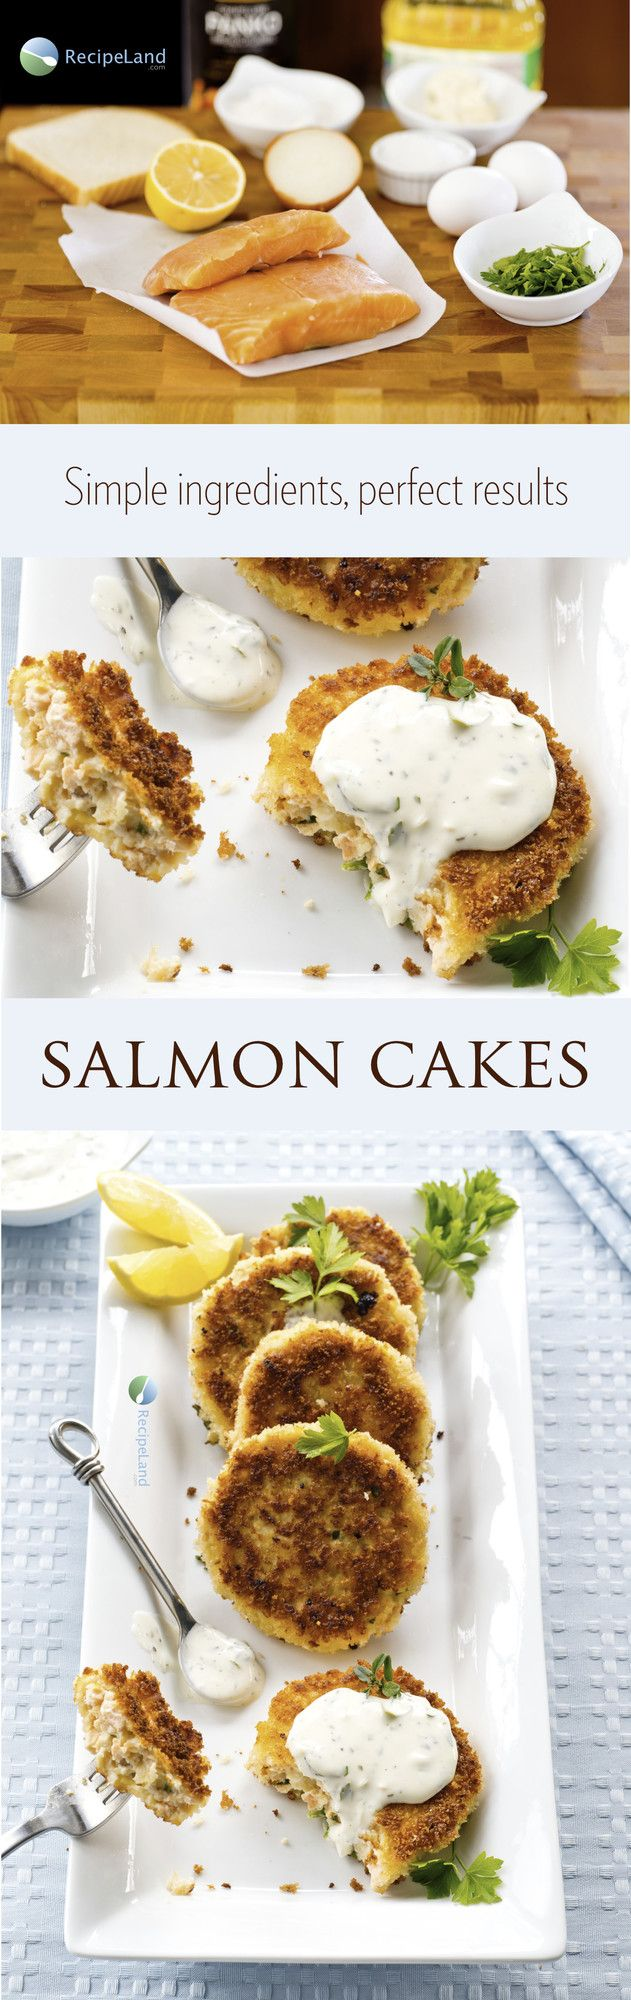 This salmon cake recipe uses fresh instead of canned salmon, and details step-by-step how to make salmon cakes.